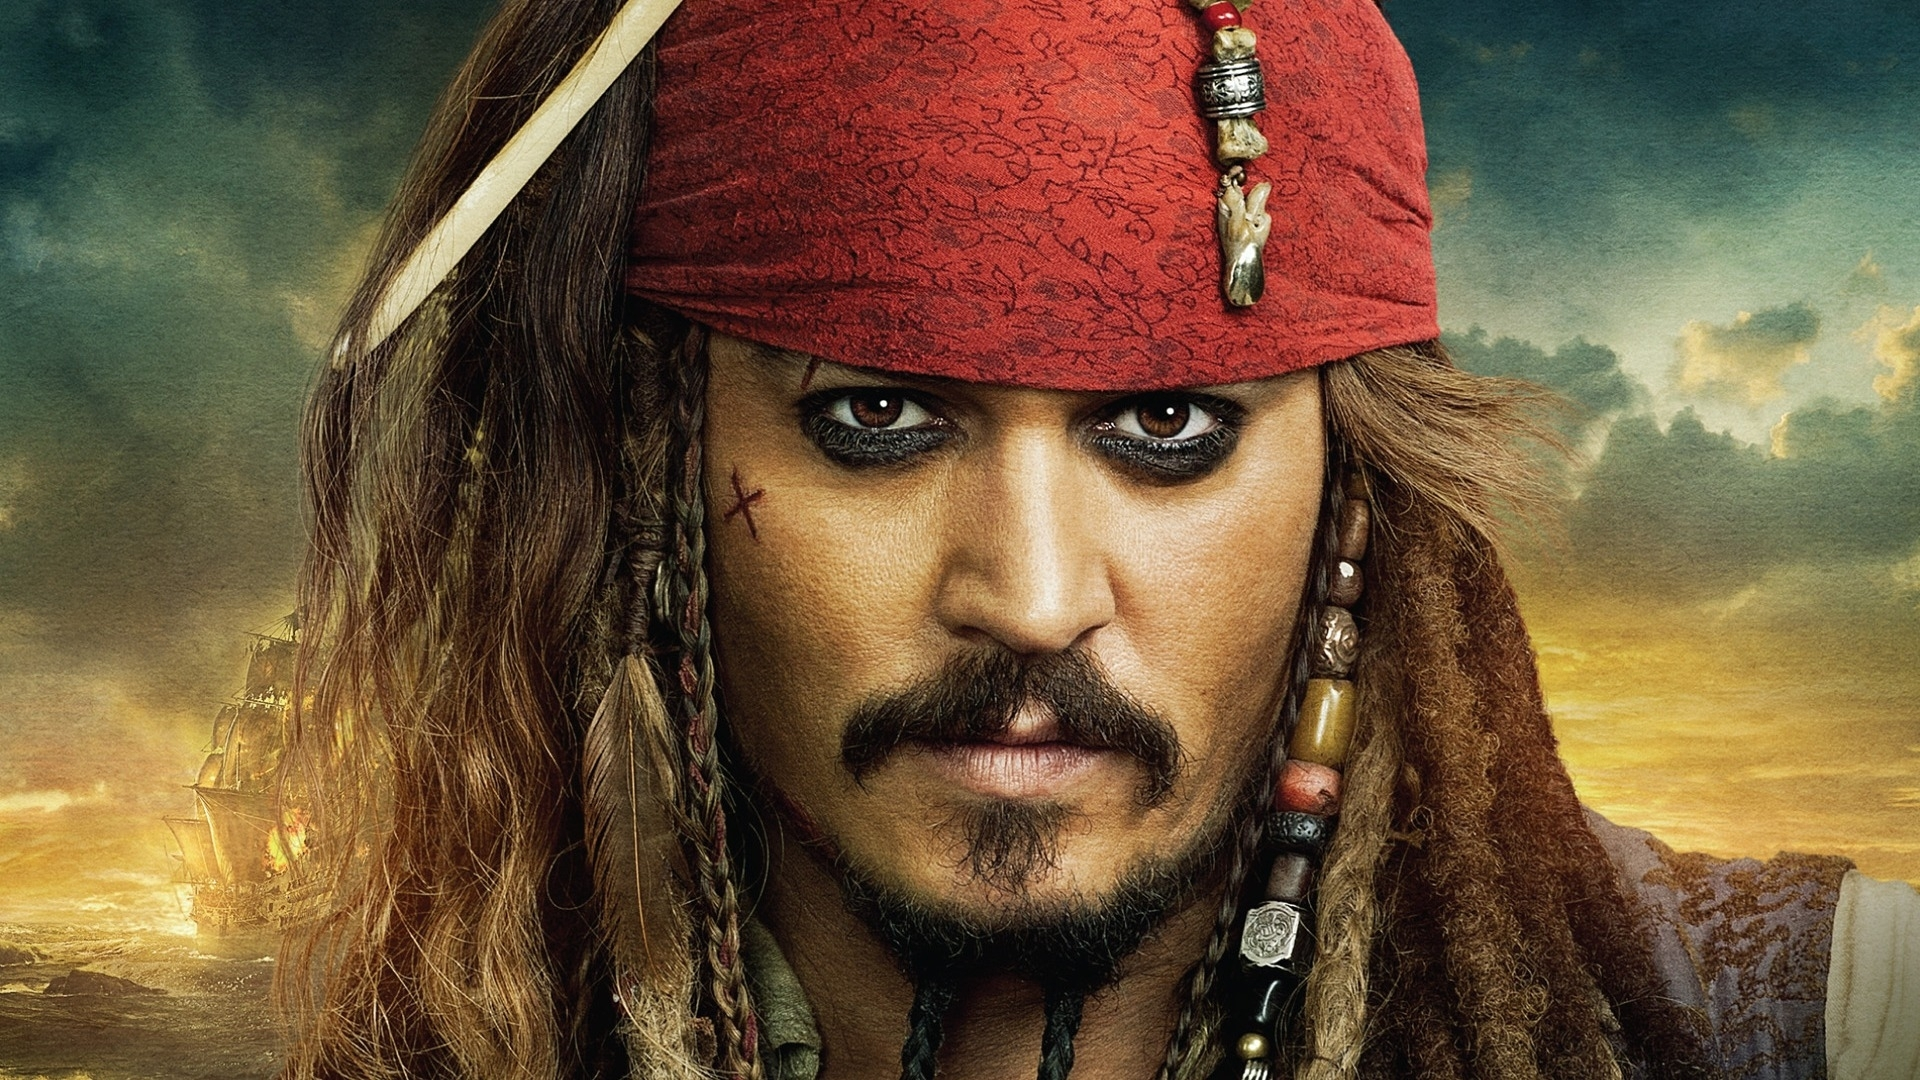 pirates images captain jack sparrow hd wallpaper and background